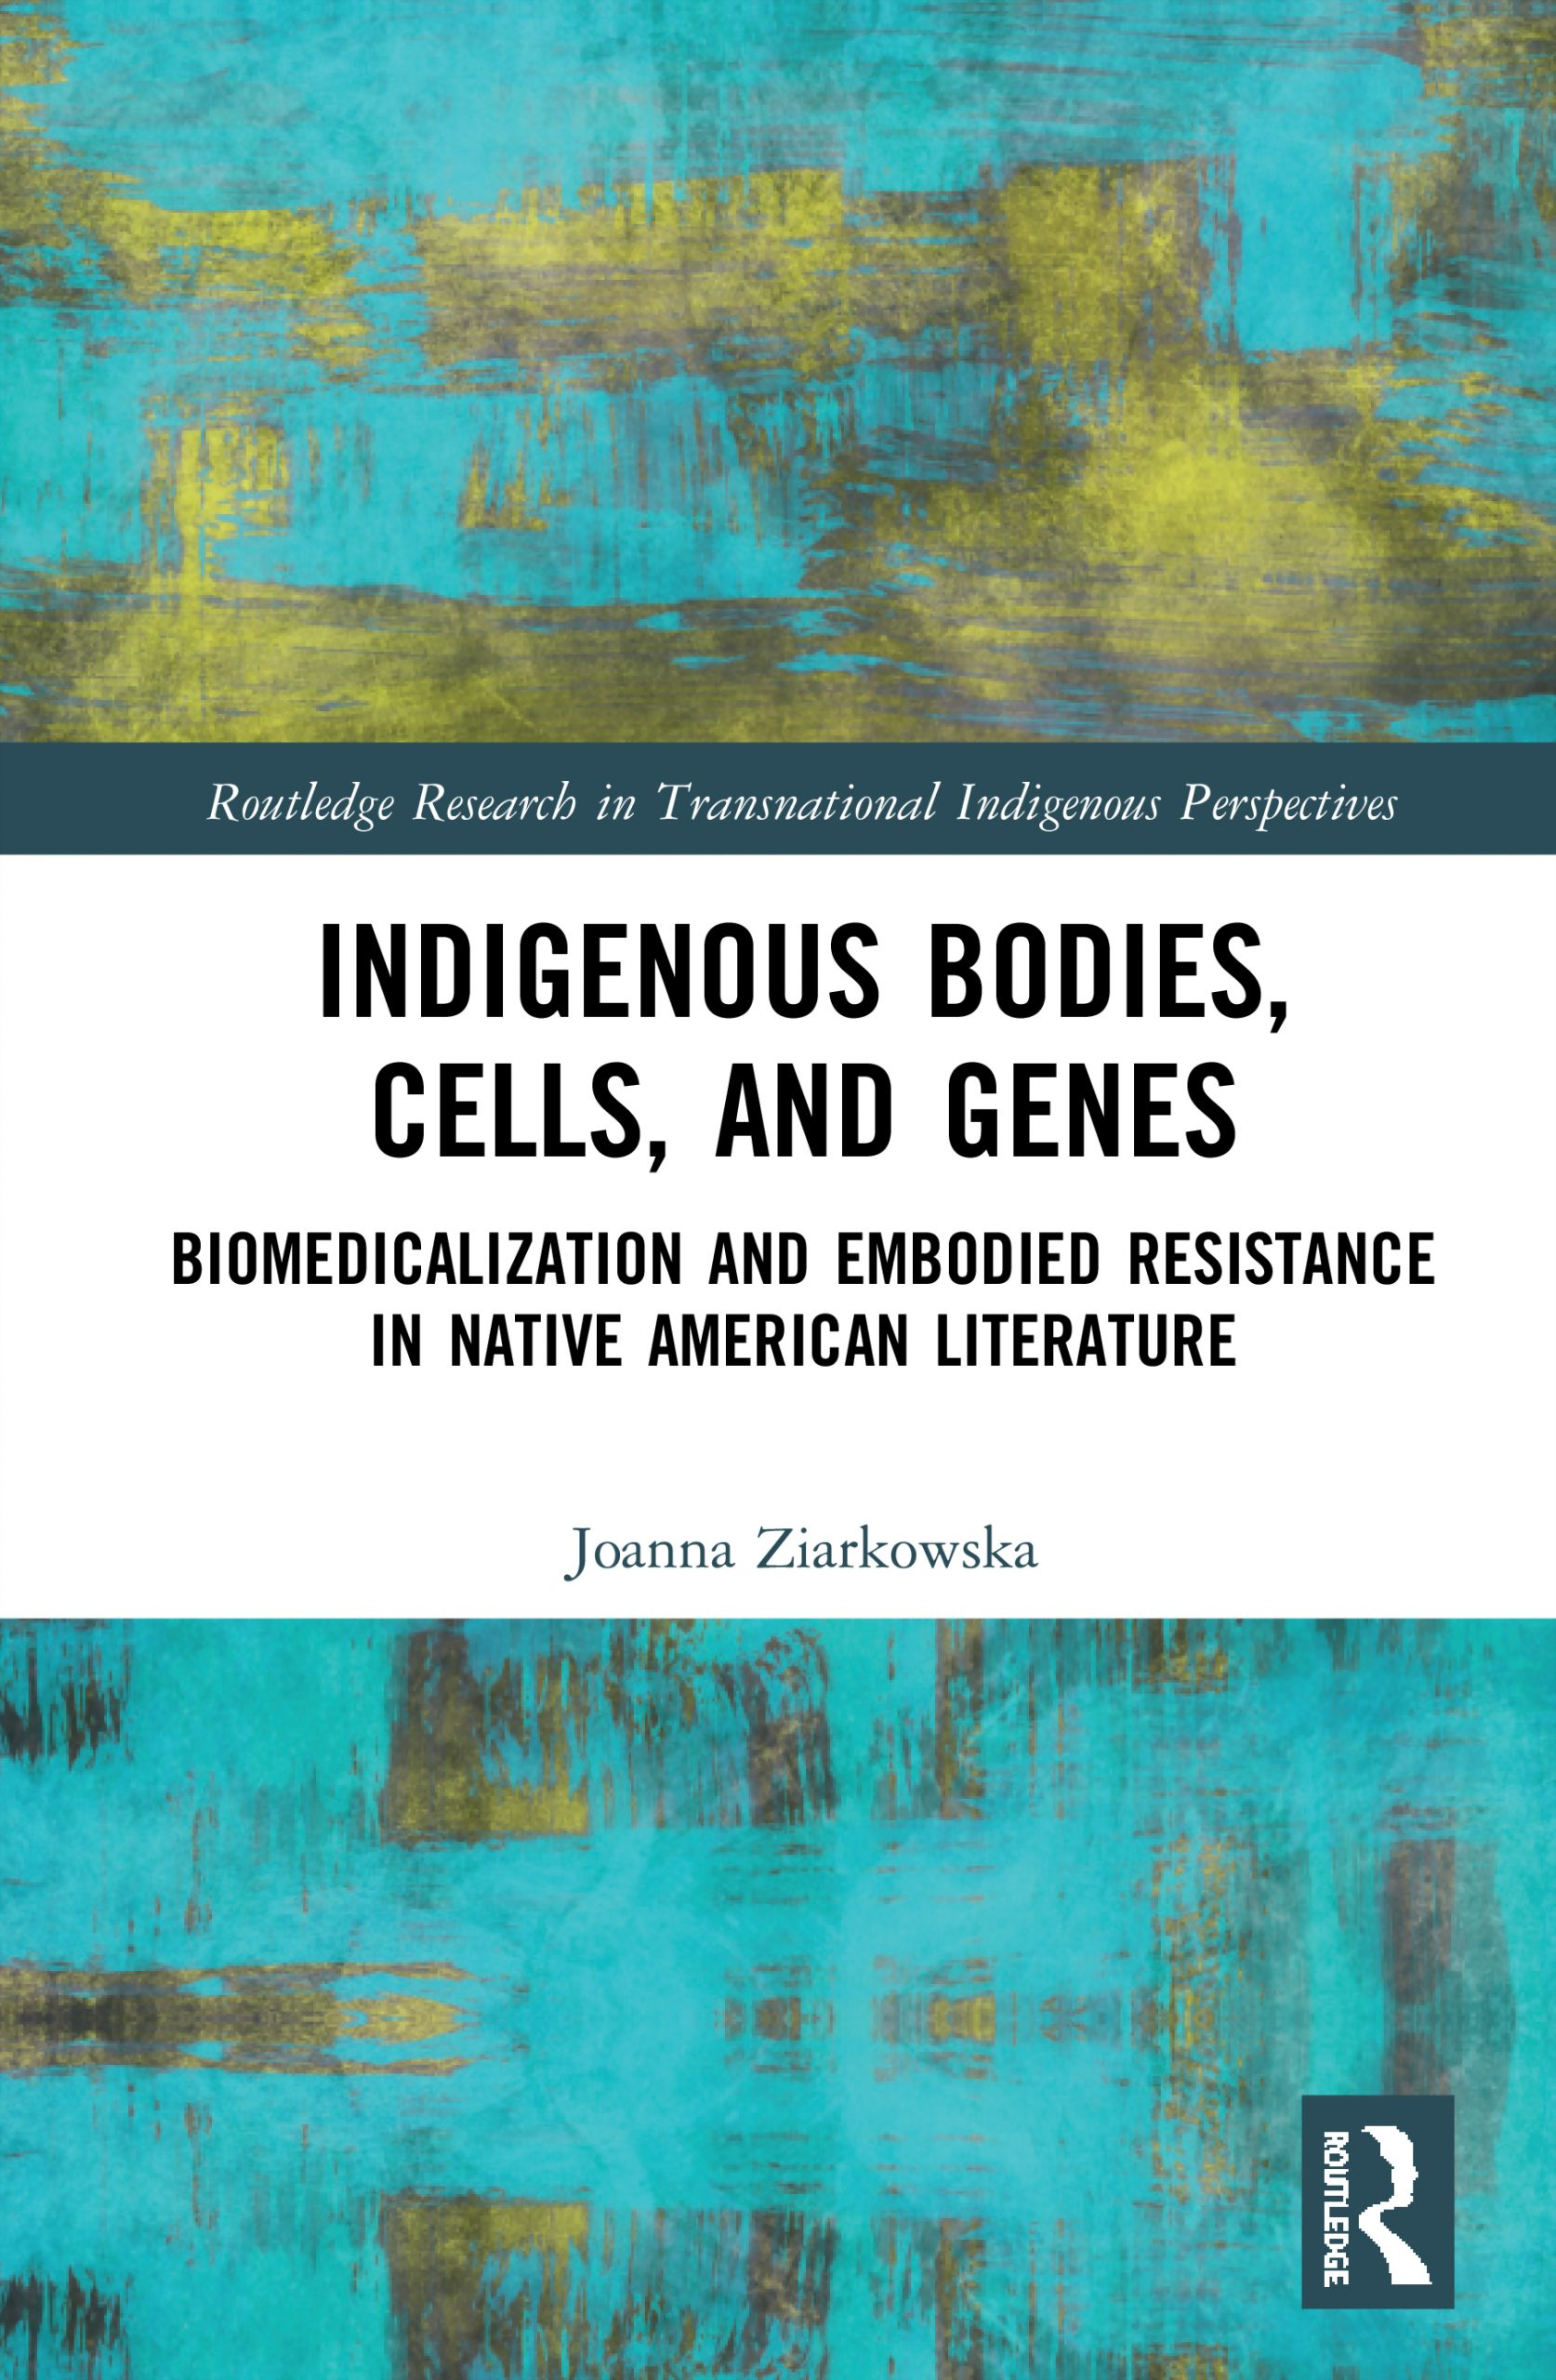 'Indigenous Bodies, Cells, and Genes': Book Review